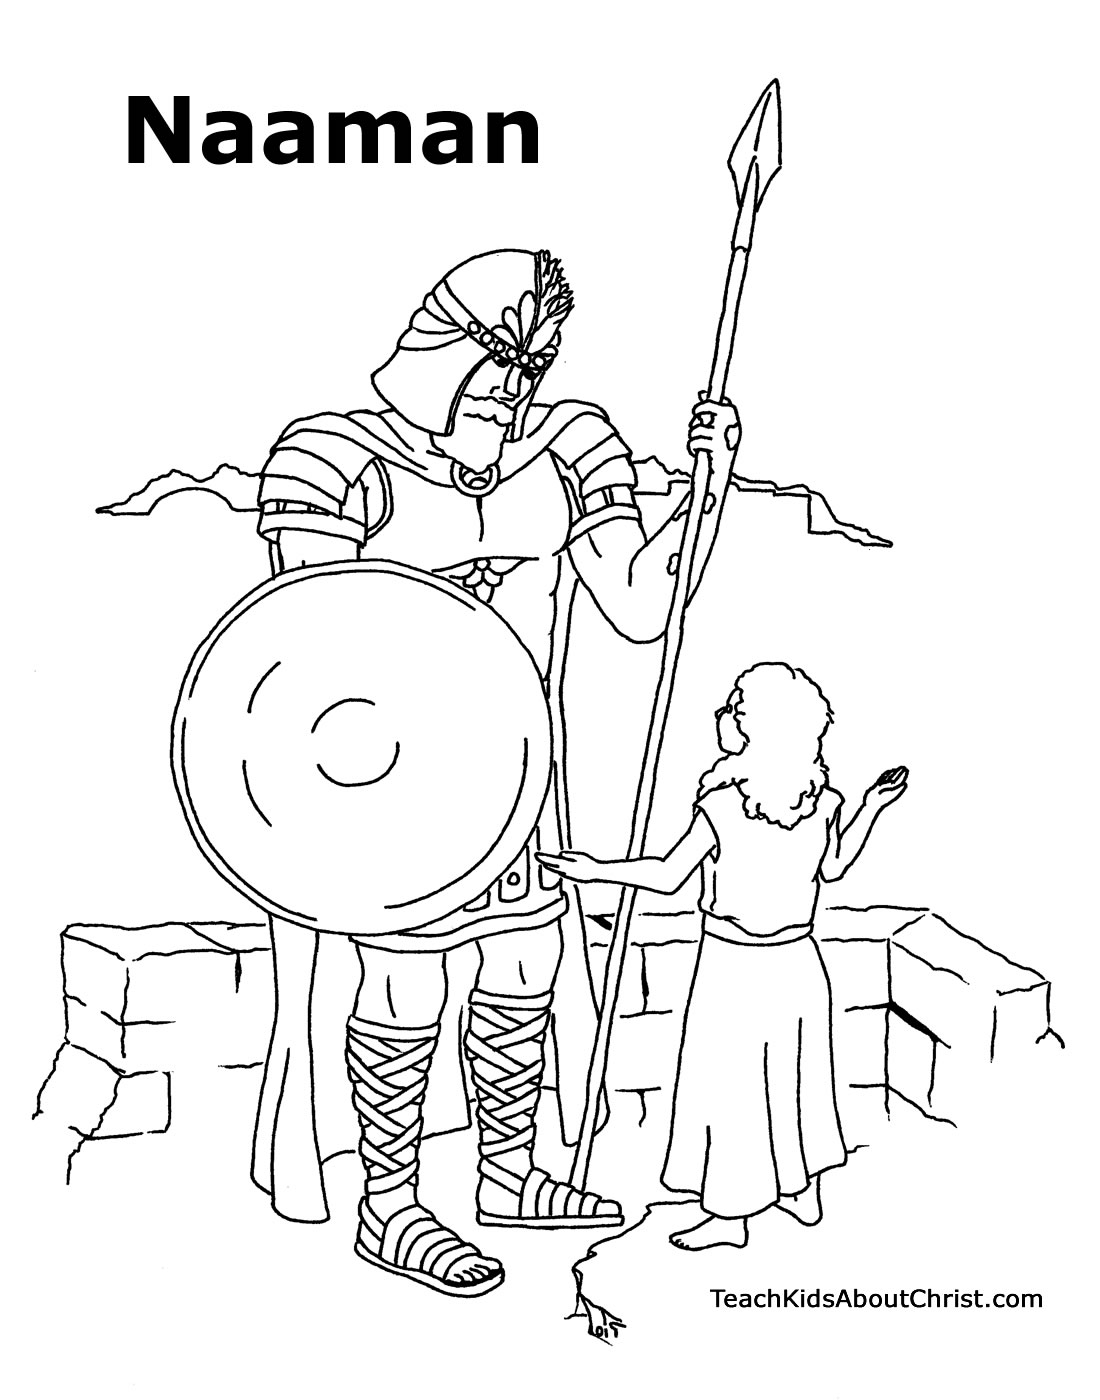 Elisha the Prophet Coloring Pages http://www.concordianews.org/kids/2011/naaman/craft.htm